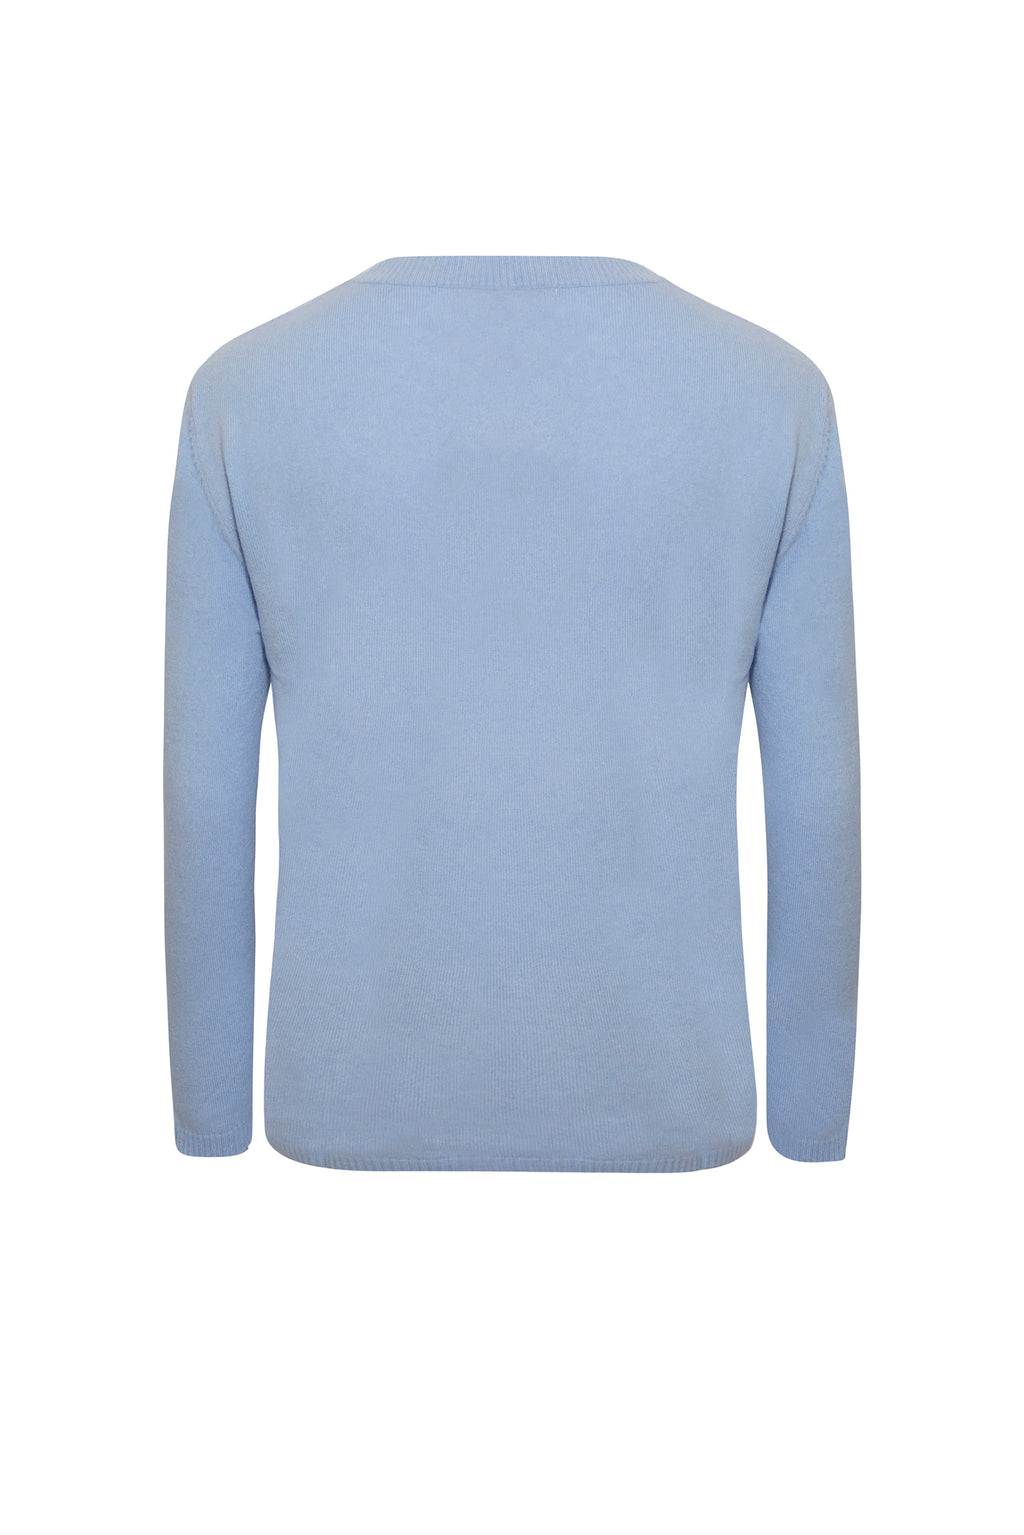 =V-Neck Cashmere Jumper